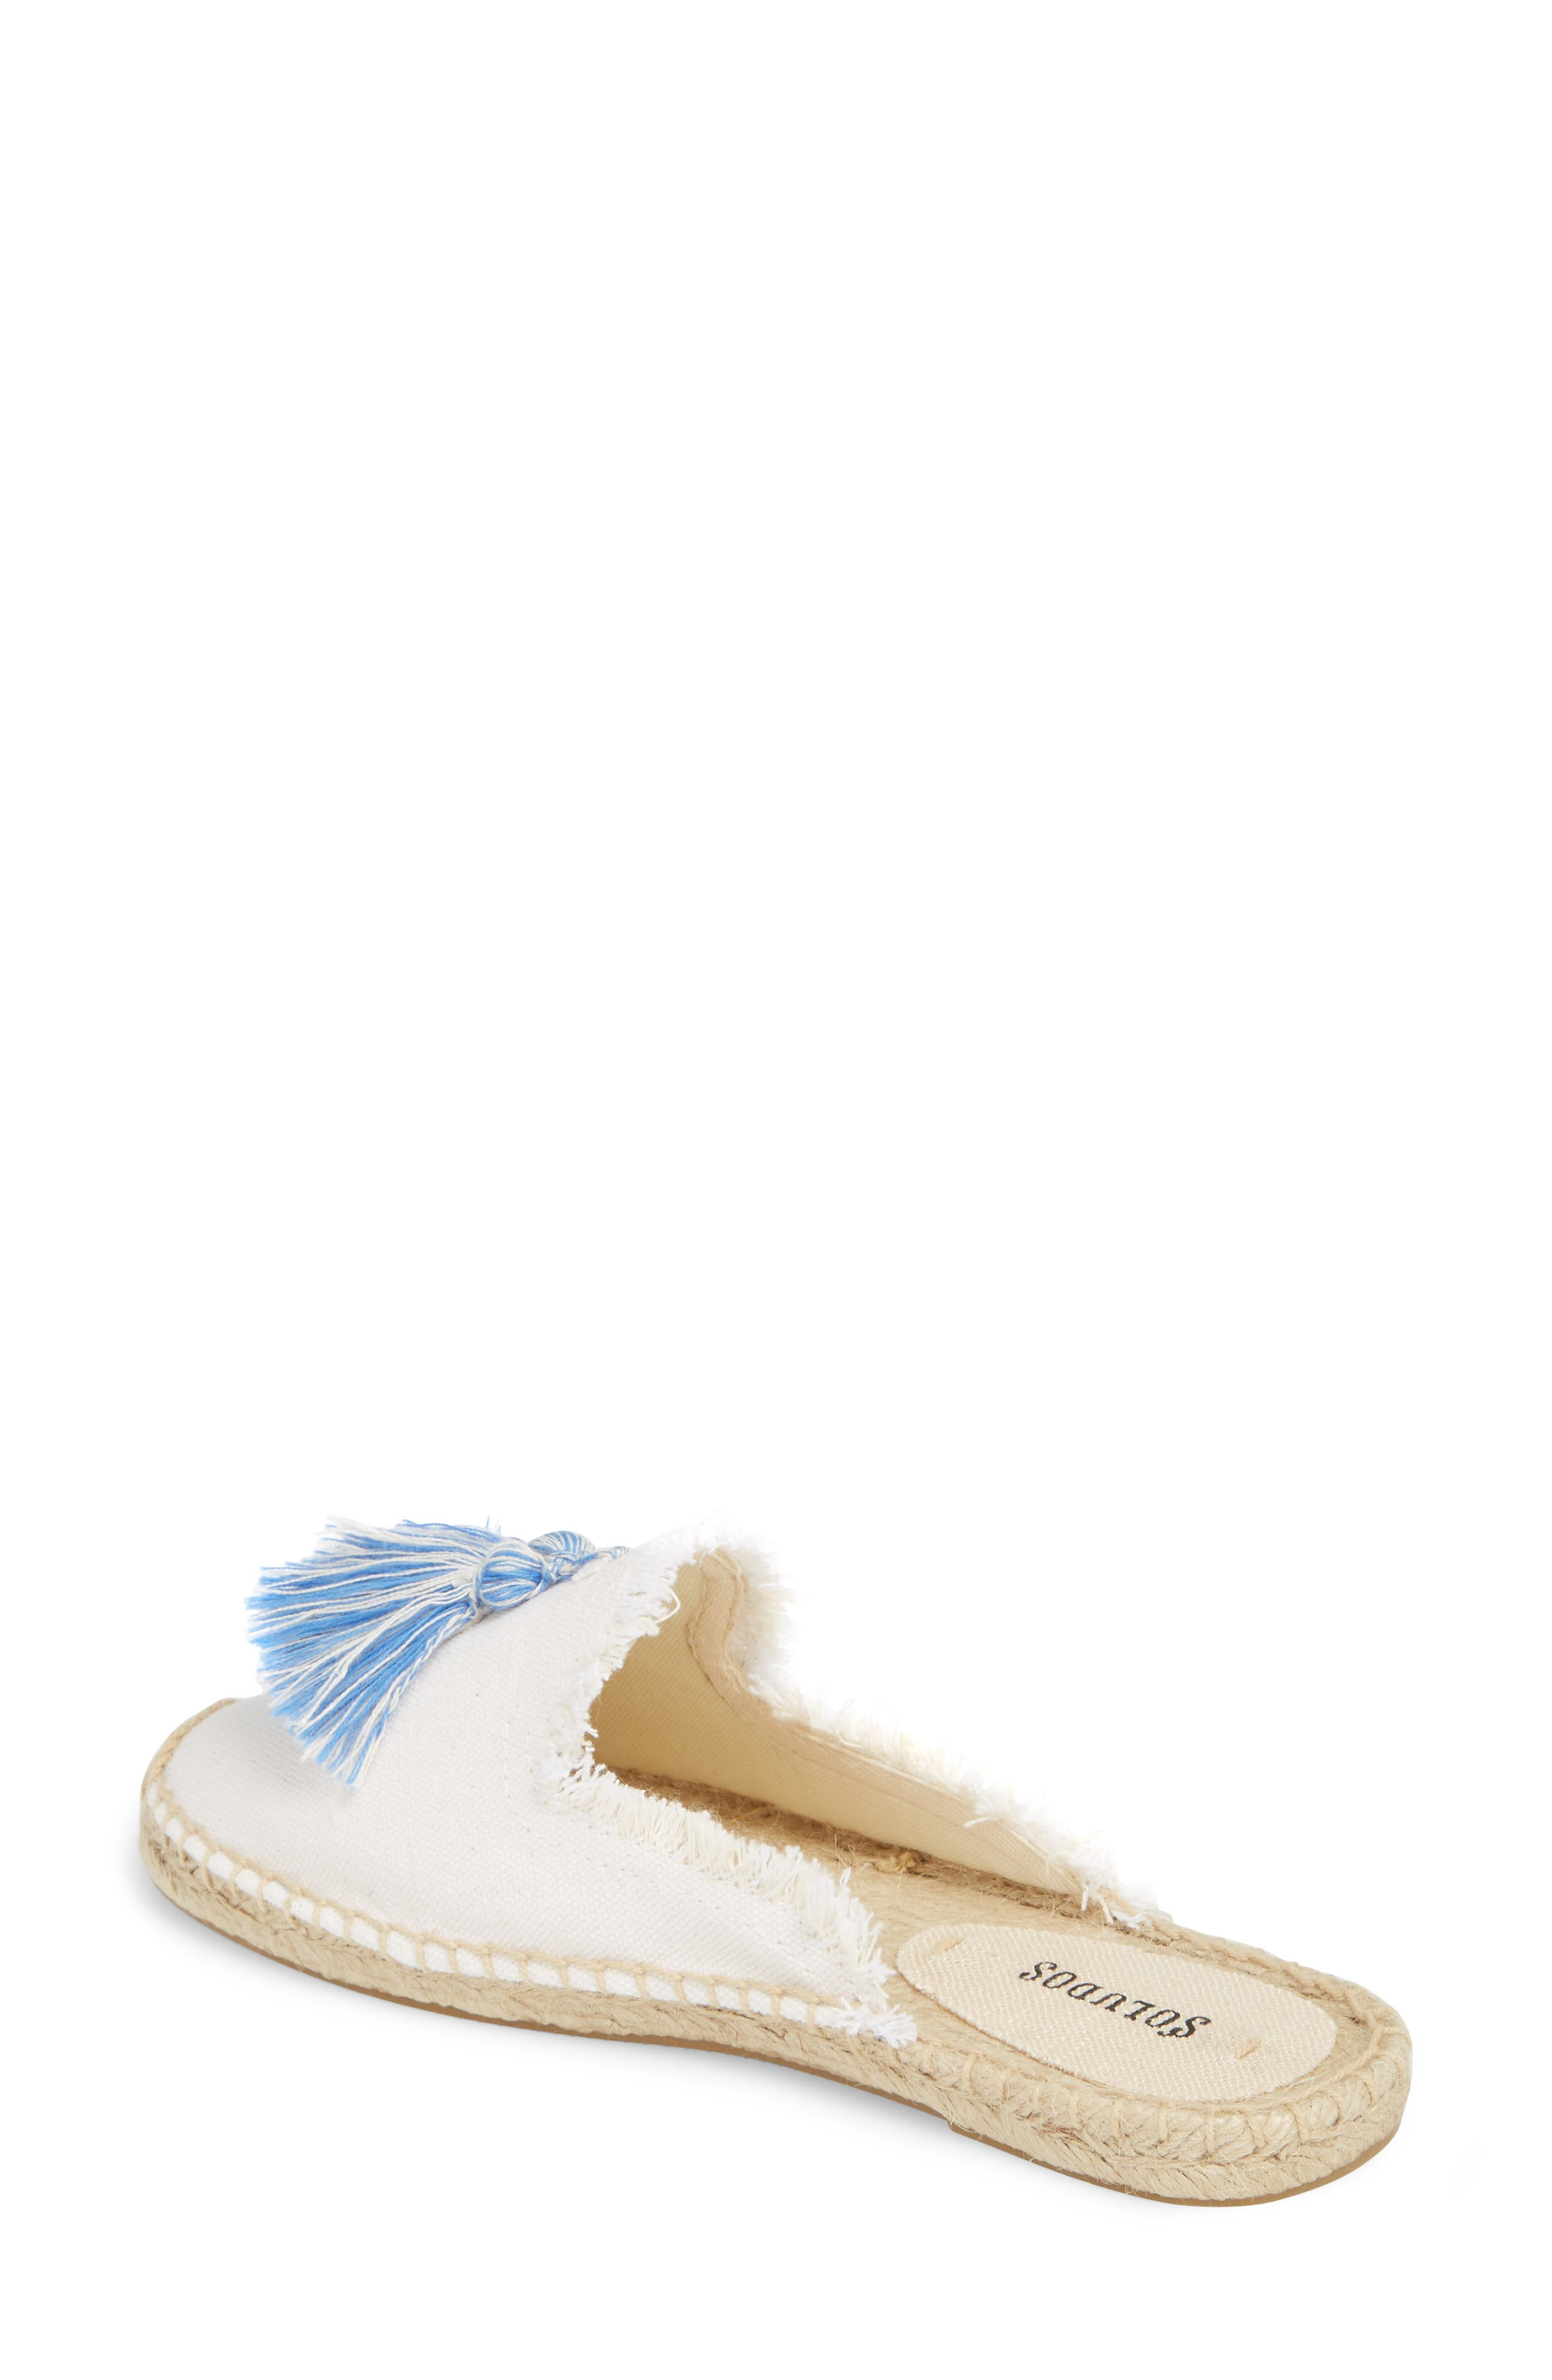 Frayed Tassel Espadrille Loafer Mule,                             Alternate thumbnail 2, color,                             WHITE